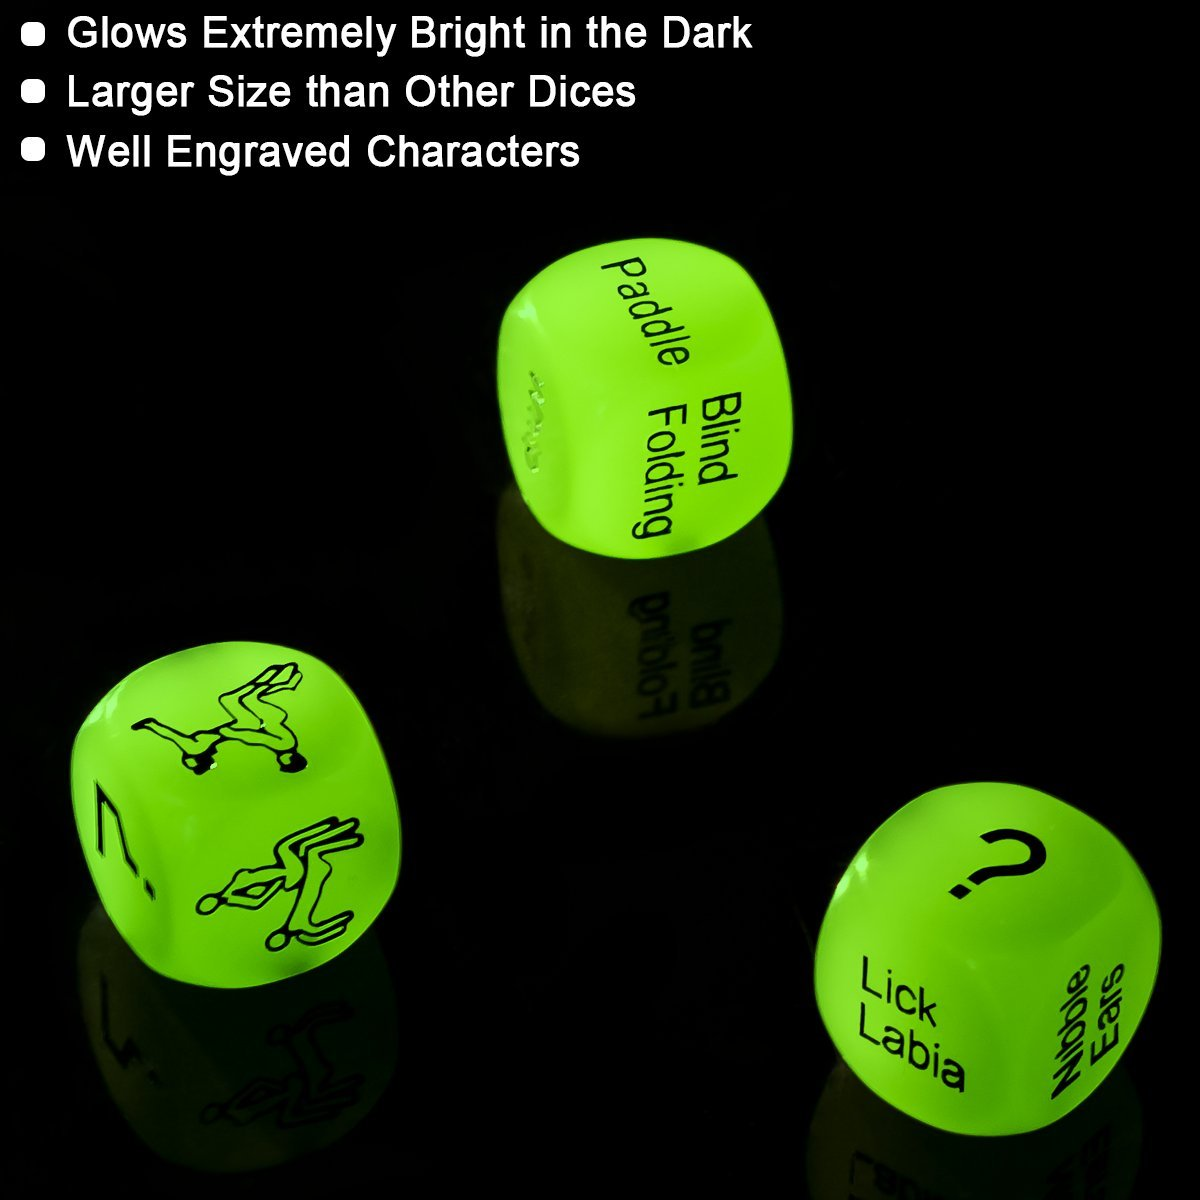 SEXY SLAVE Sex Dice for Couples - Glow in the Dark Spicy Dices with 3 Levels Up for Beginners or Advanced Players,Set of 3,Large Size